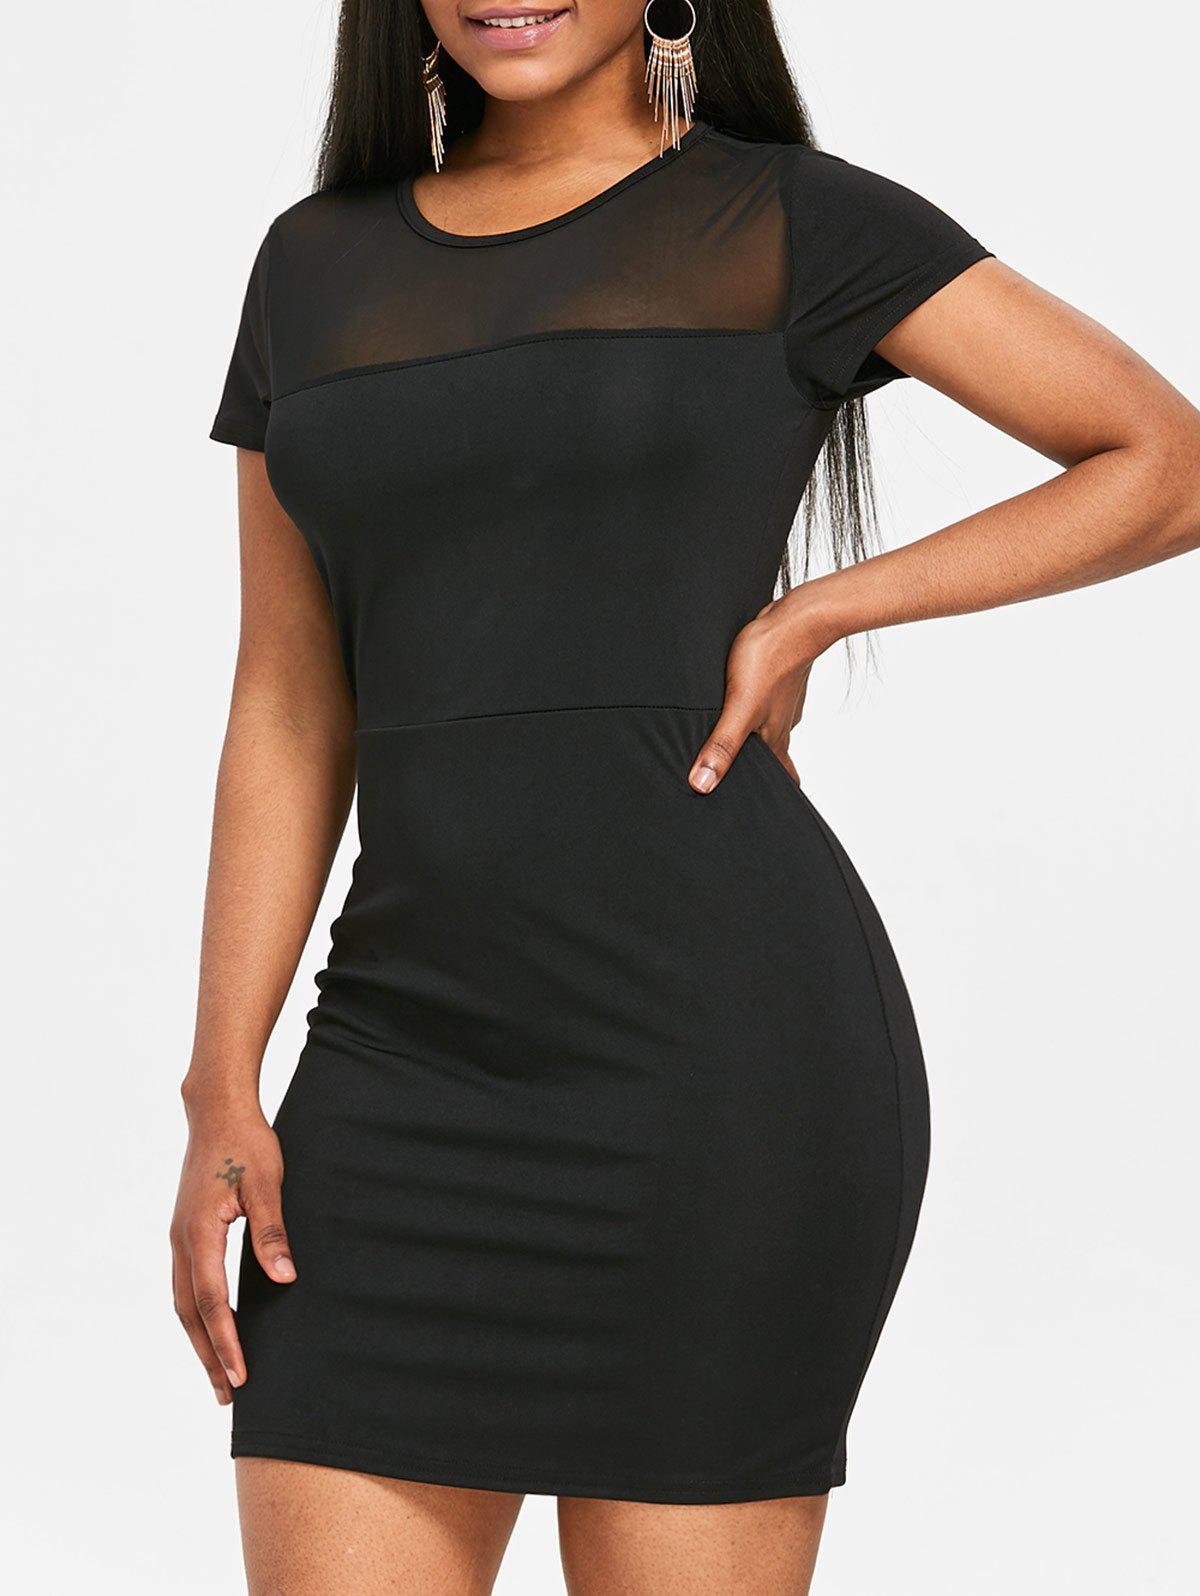 Mesh Panel See Through Bodycon Dress - BLACK L